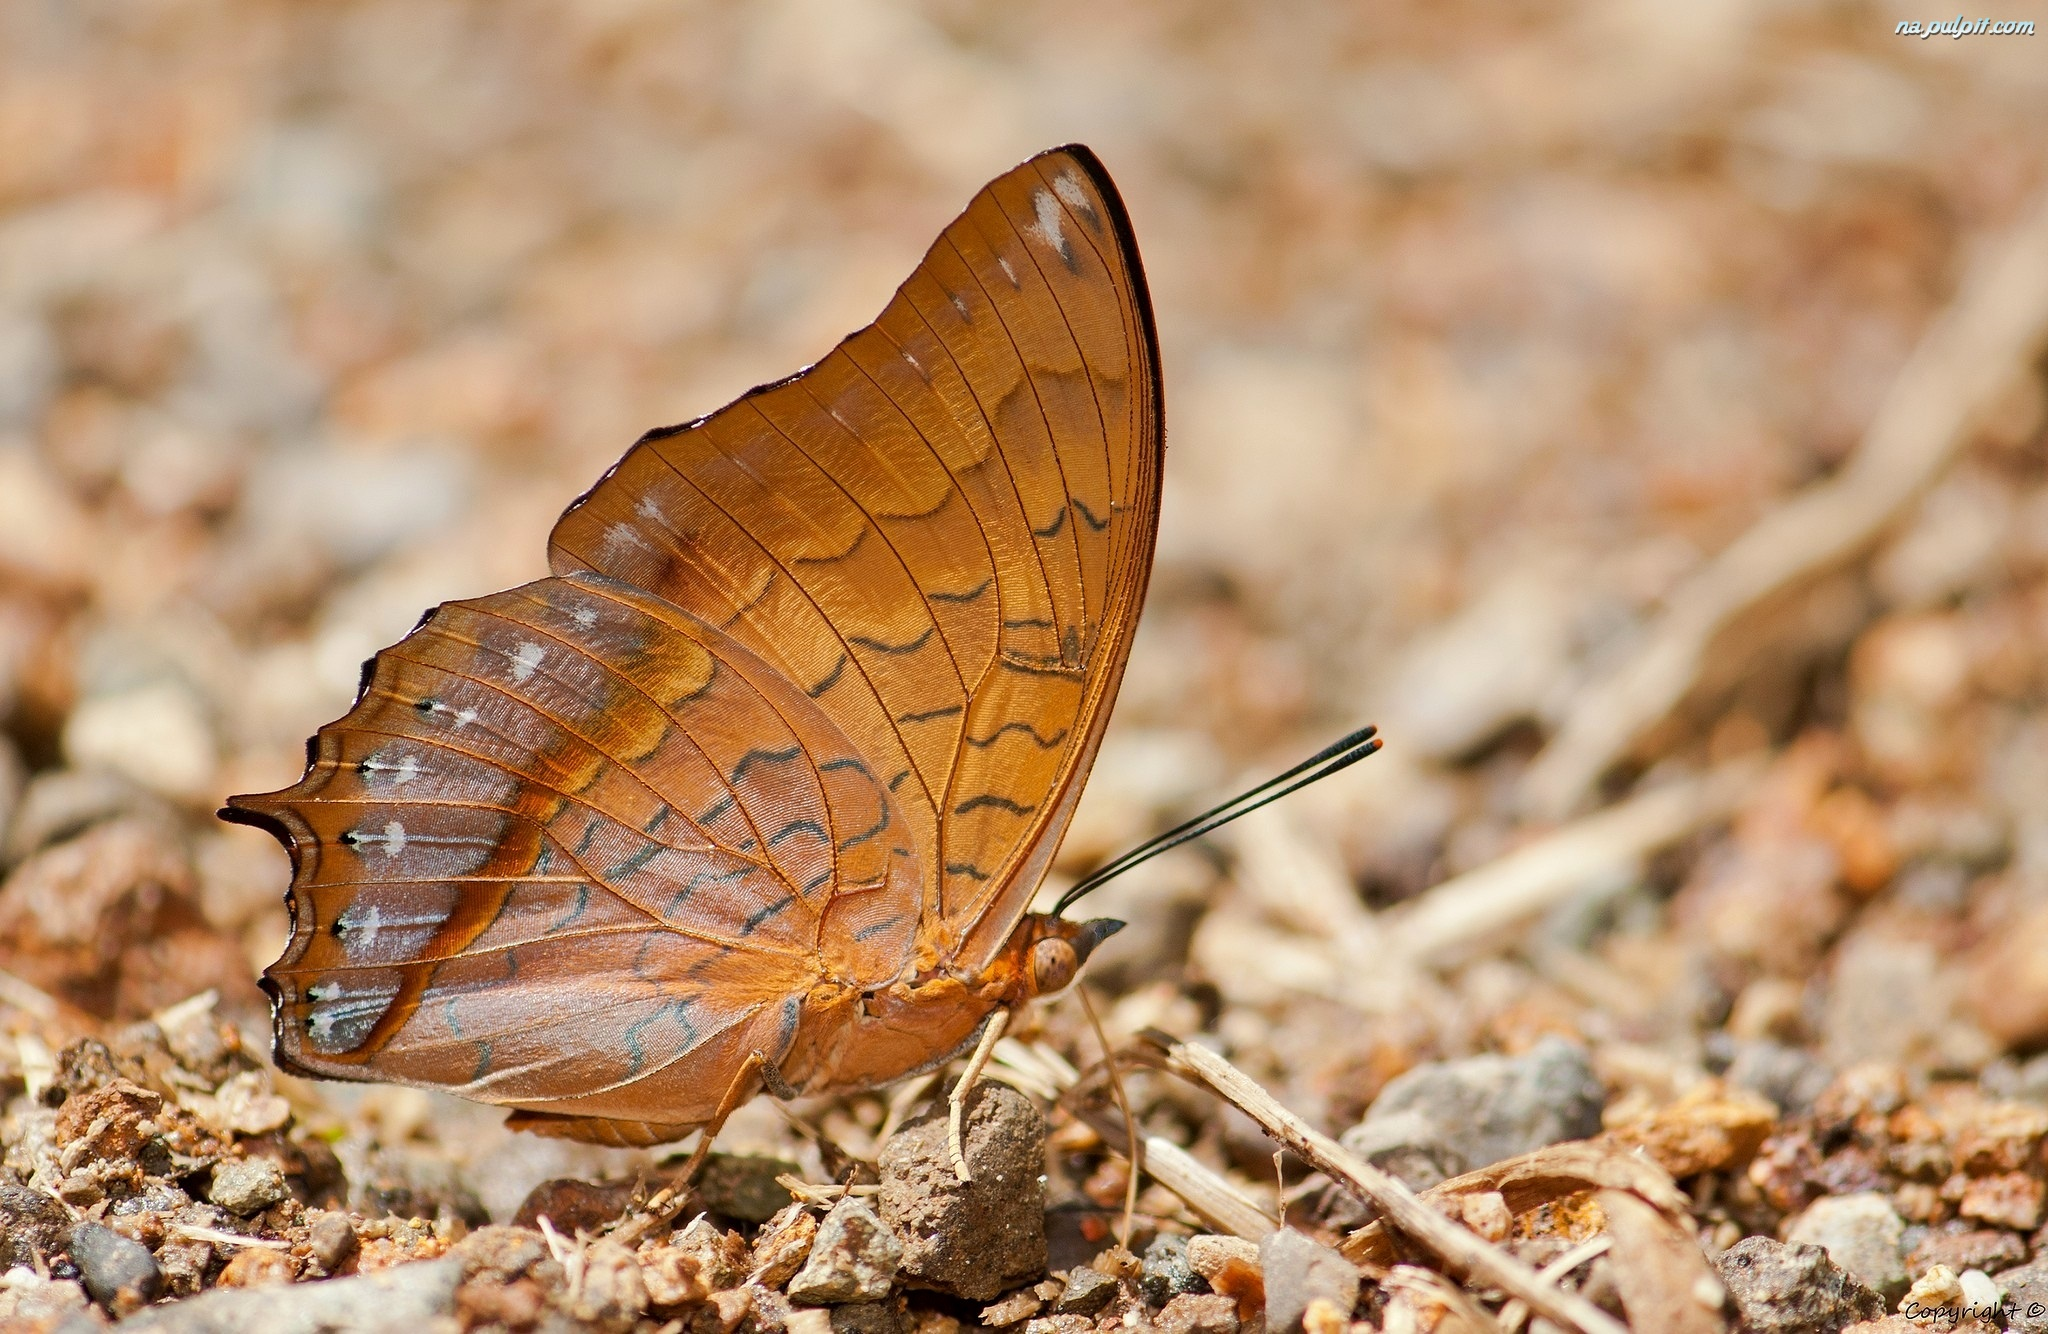 Charaxes affinis, Brązowy, Motyl